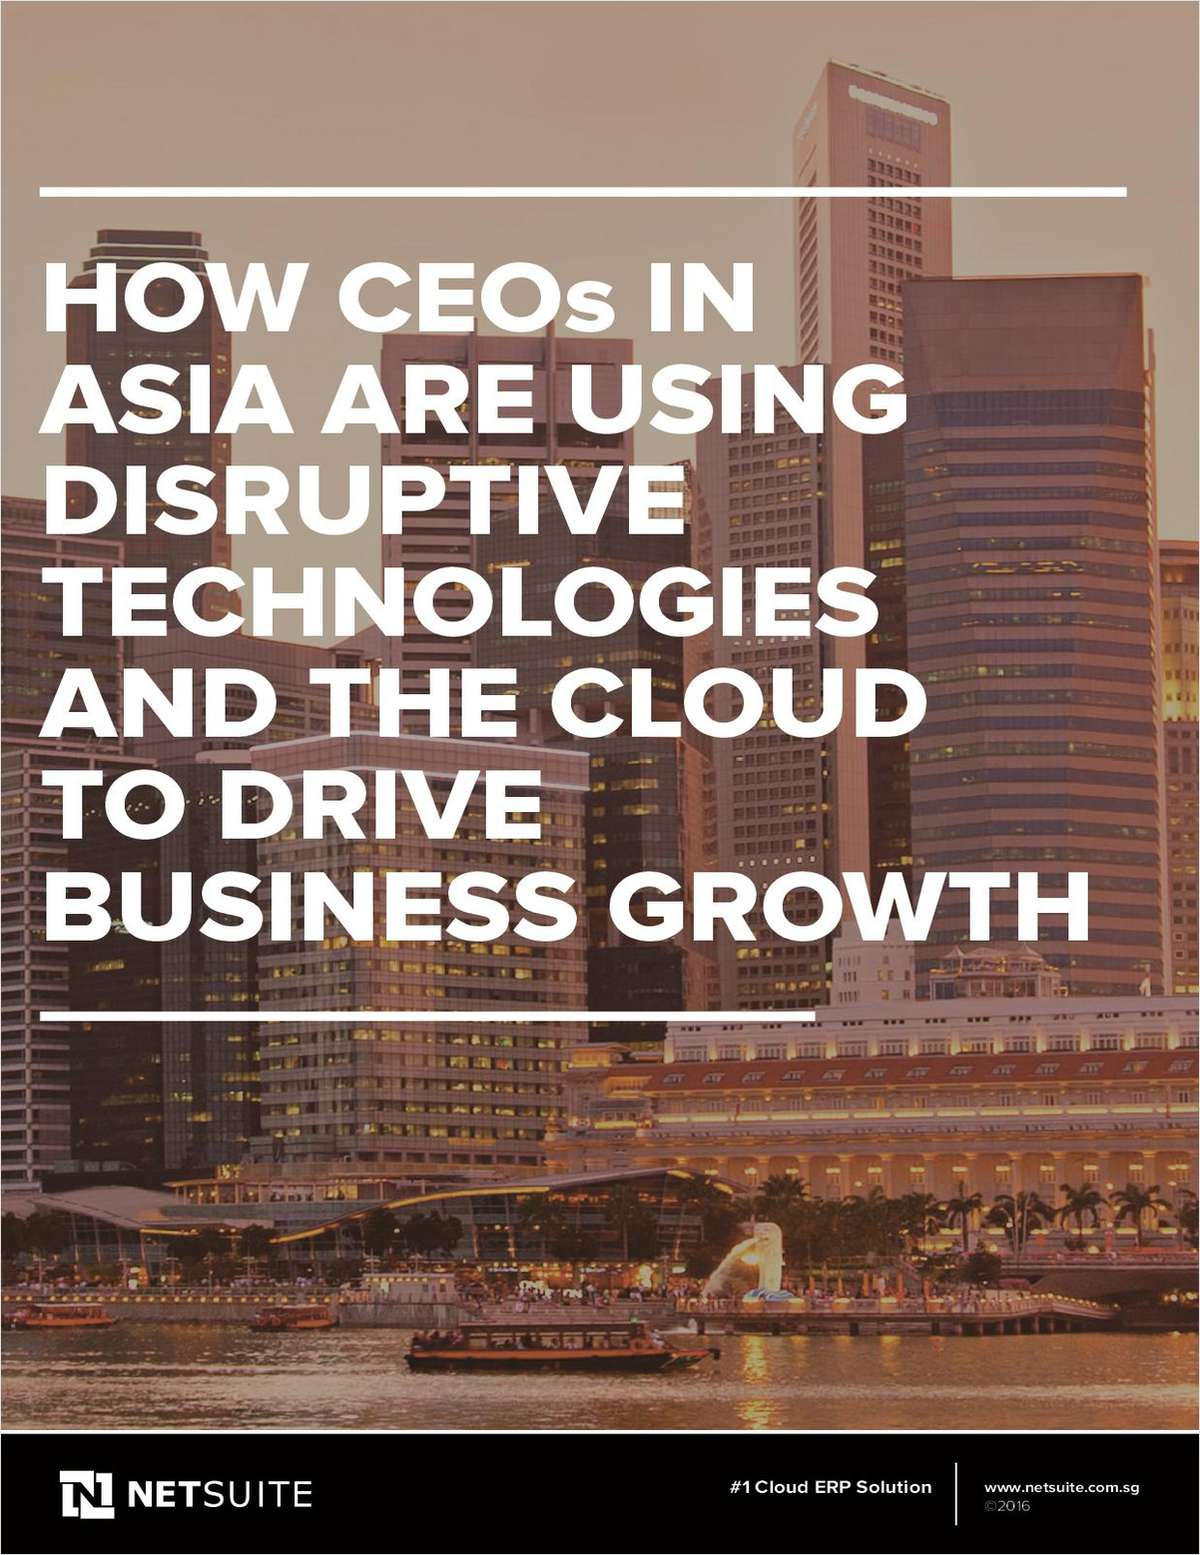 How CEOs in Asia Are Using Disruptive Technologies and the Cloud to Drive Business Growth